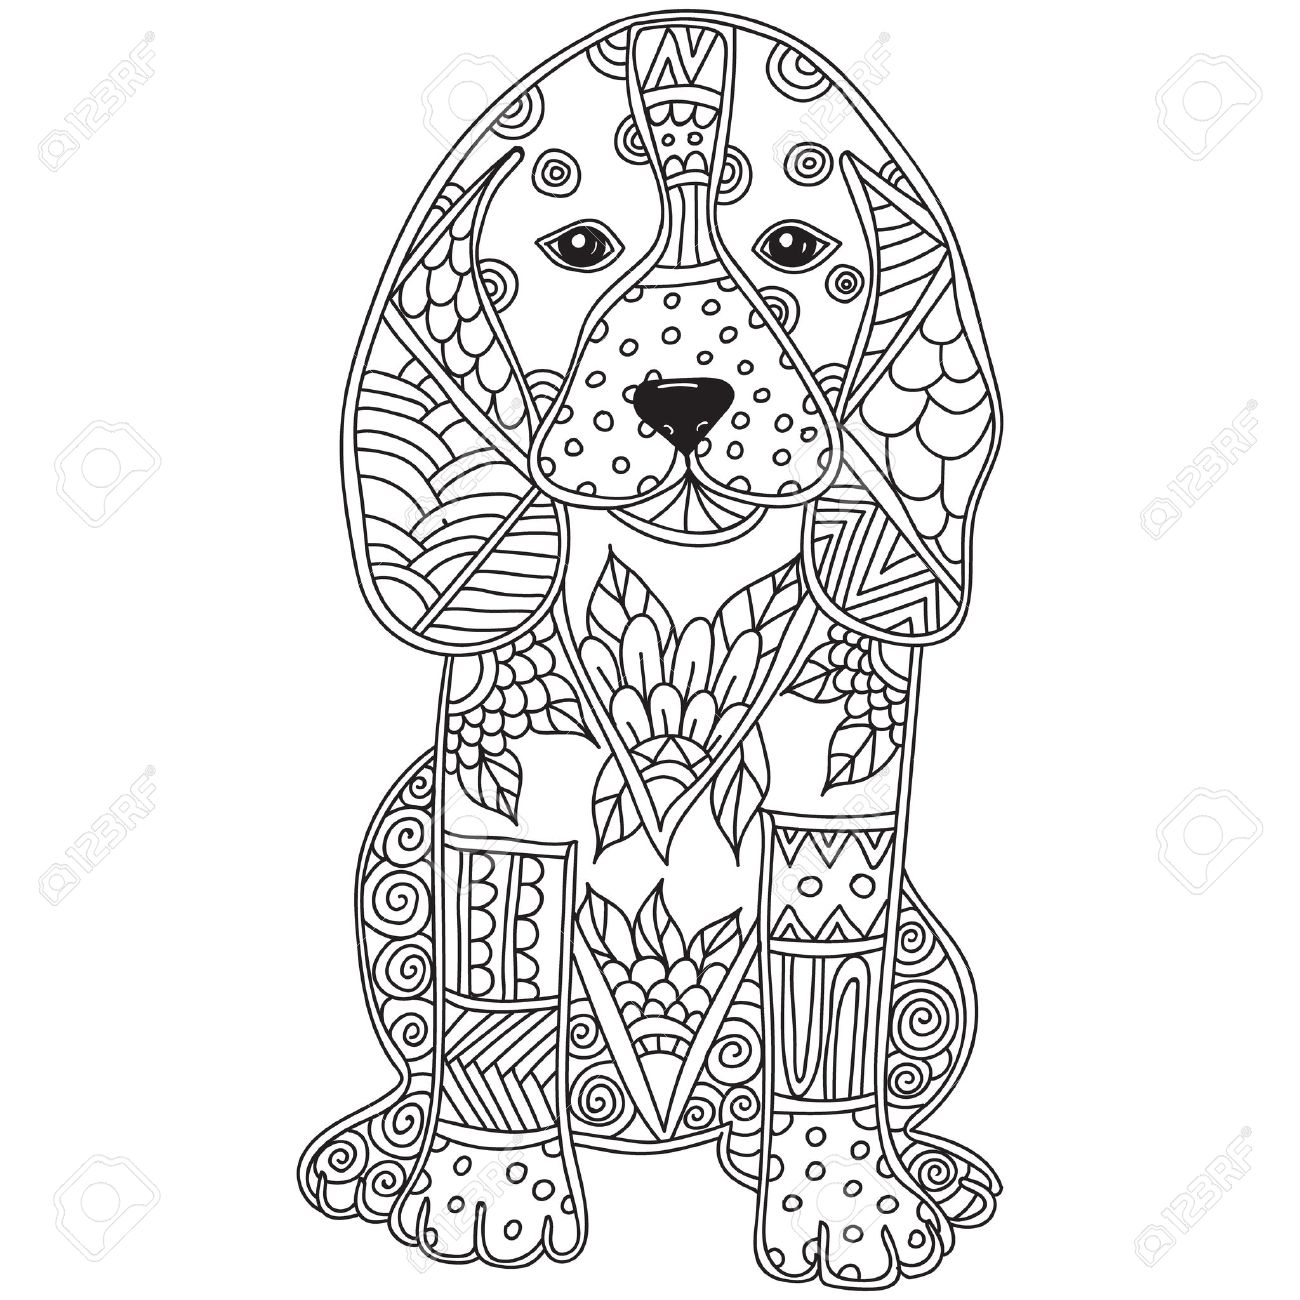 Dog Adult Antistress Or Children Coloring Page. Hand Drawn Animal ...